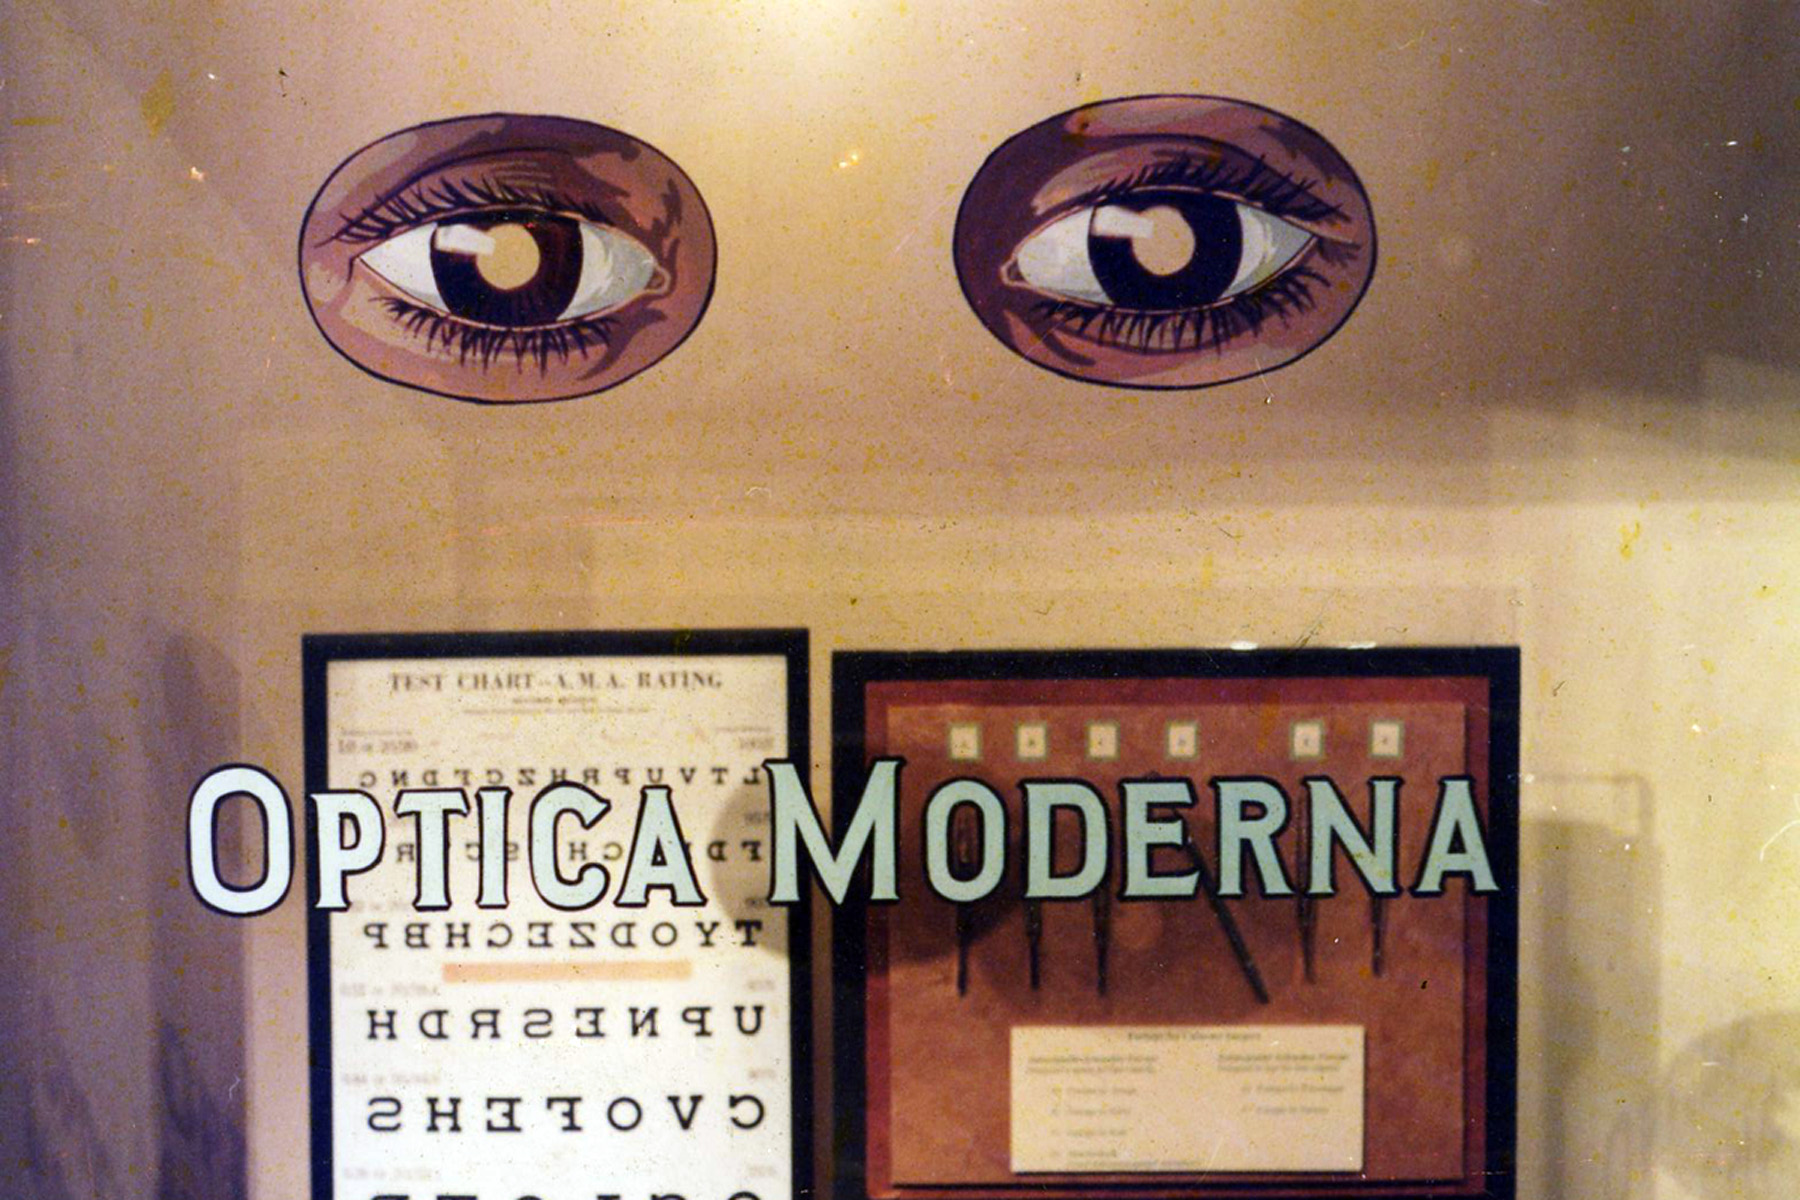 WINDOW-optic-moderna_5958657607_o.jpg